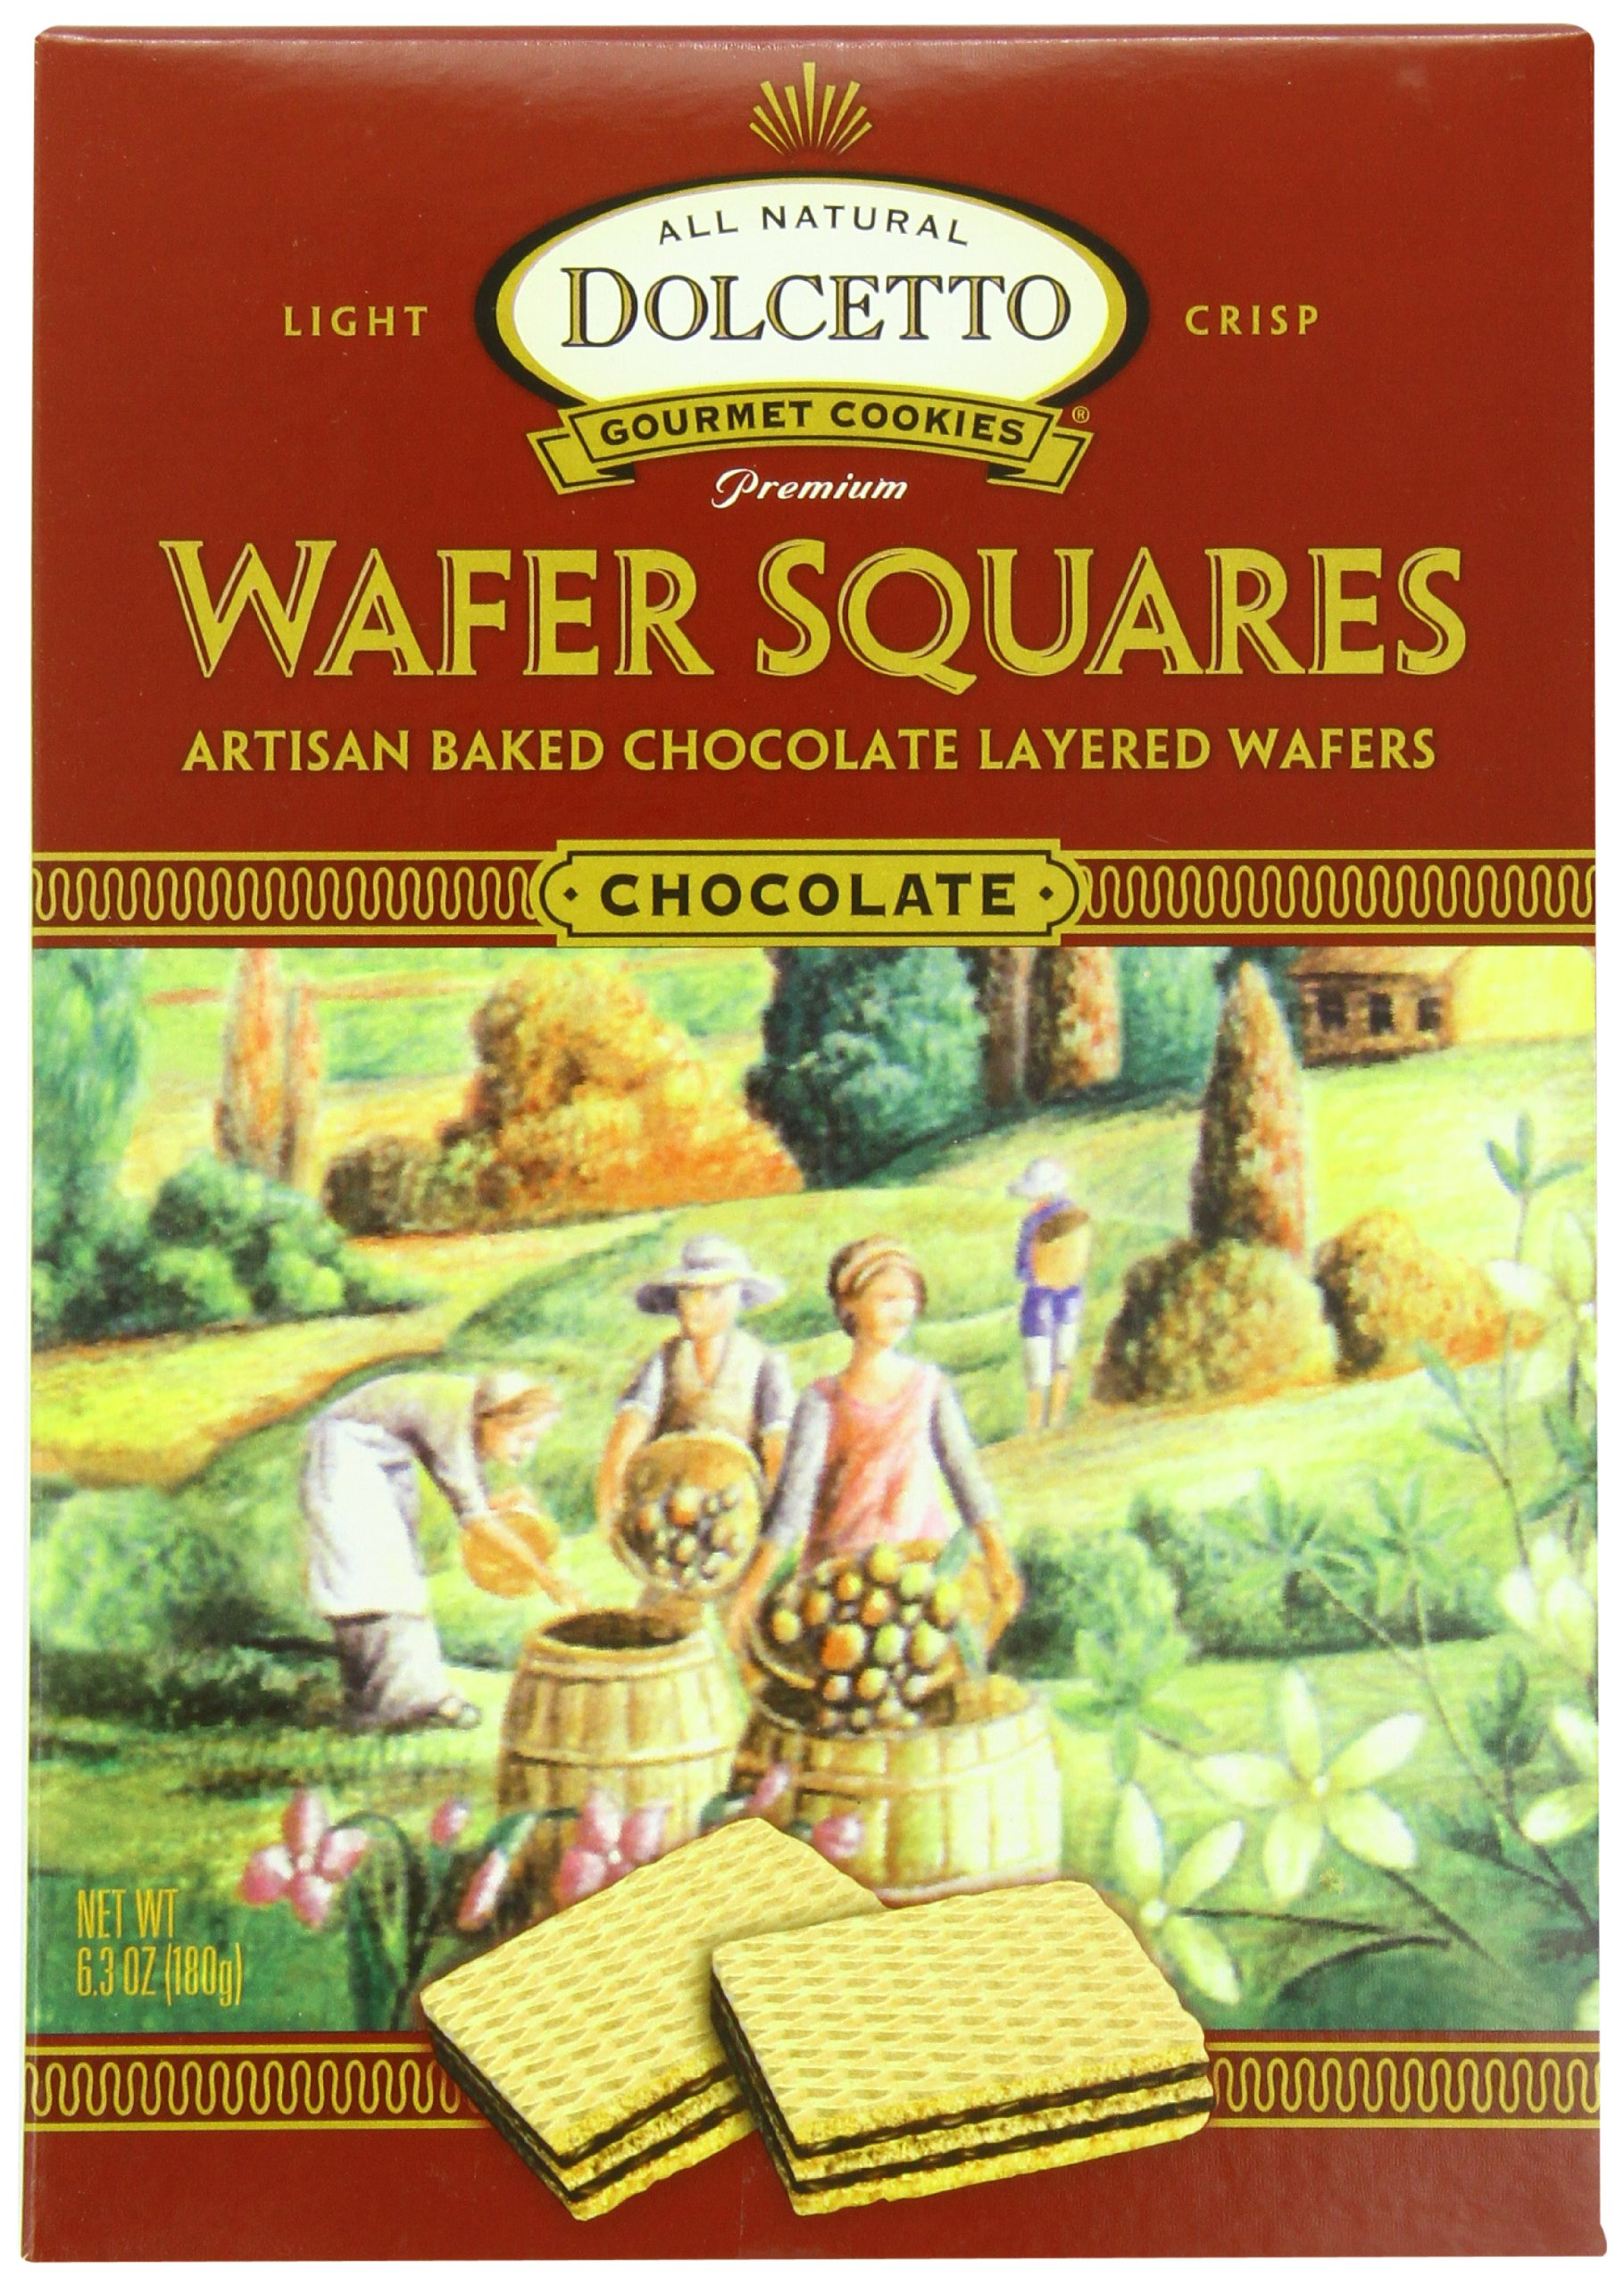 Dolcetto All Natural Wafer Squares, Chocolate, 6.3 Ounce (Pack of 12)